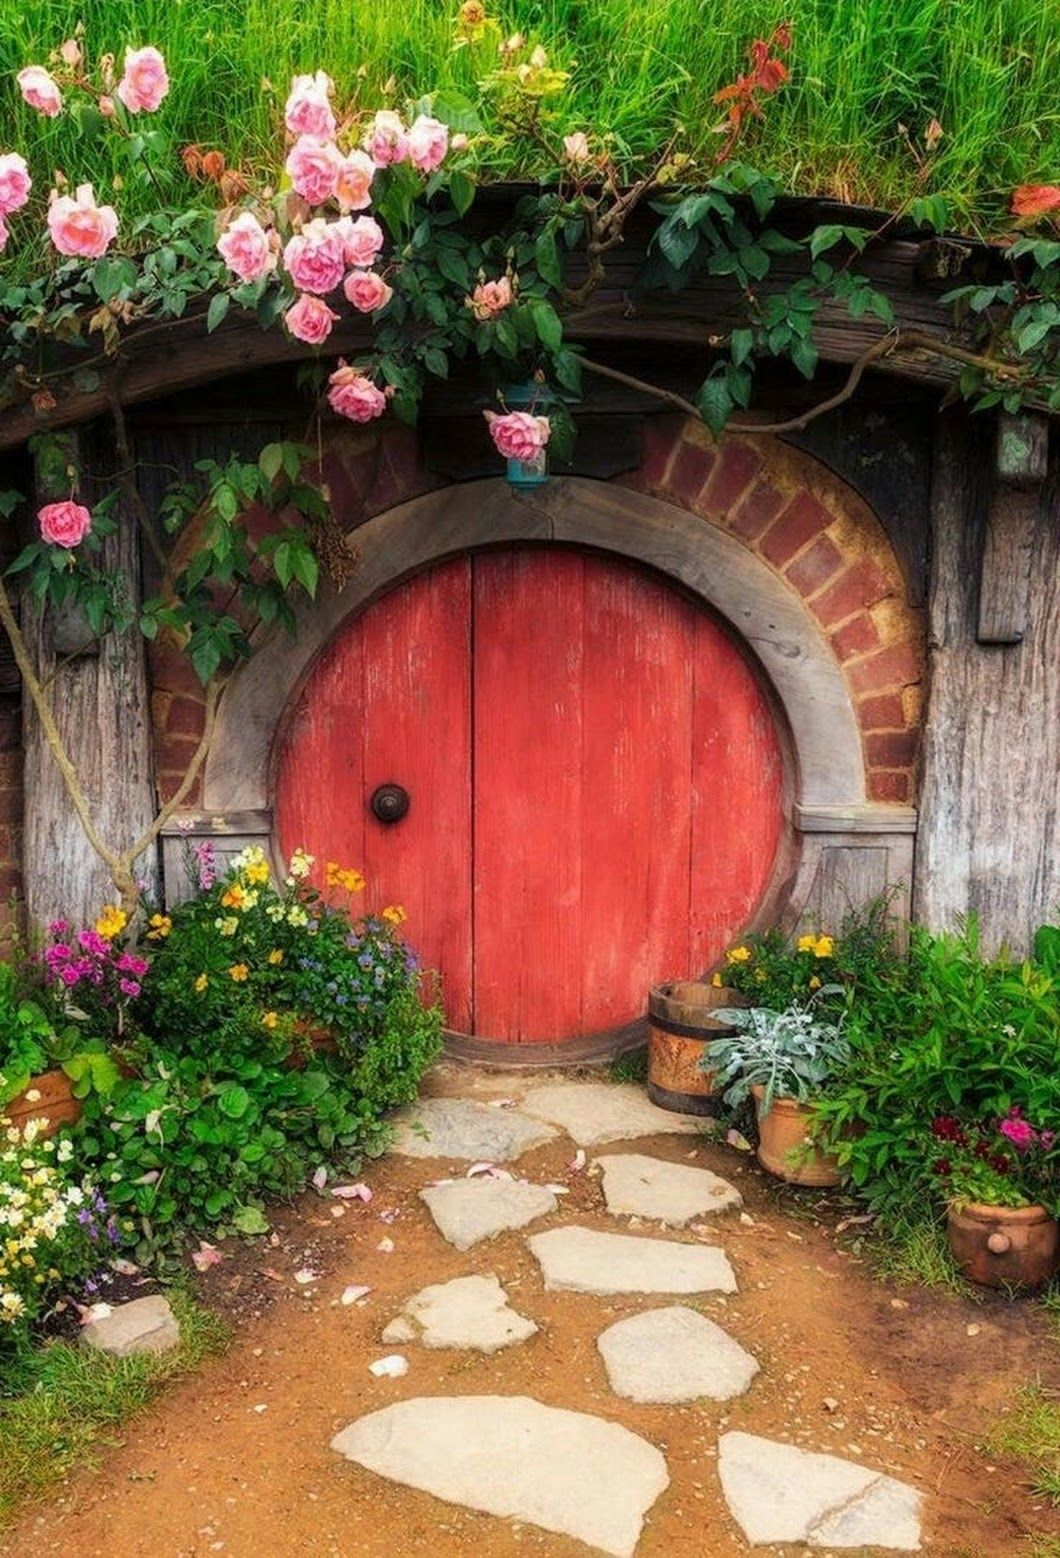 Building & Pin by Mindy Owen on HOBBIT Holes and hobbit inspiration | Pinterest ...